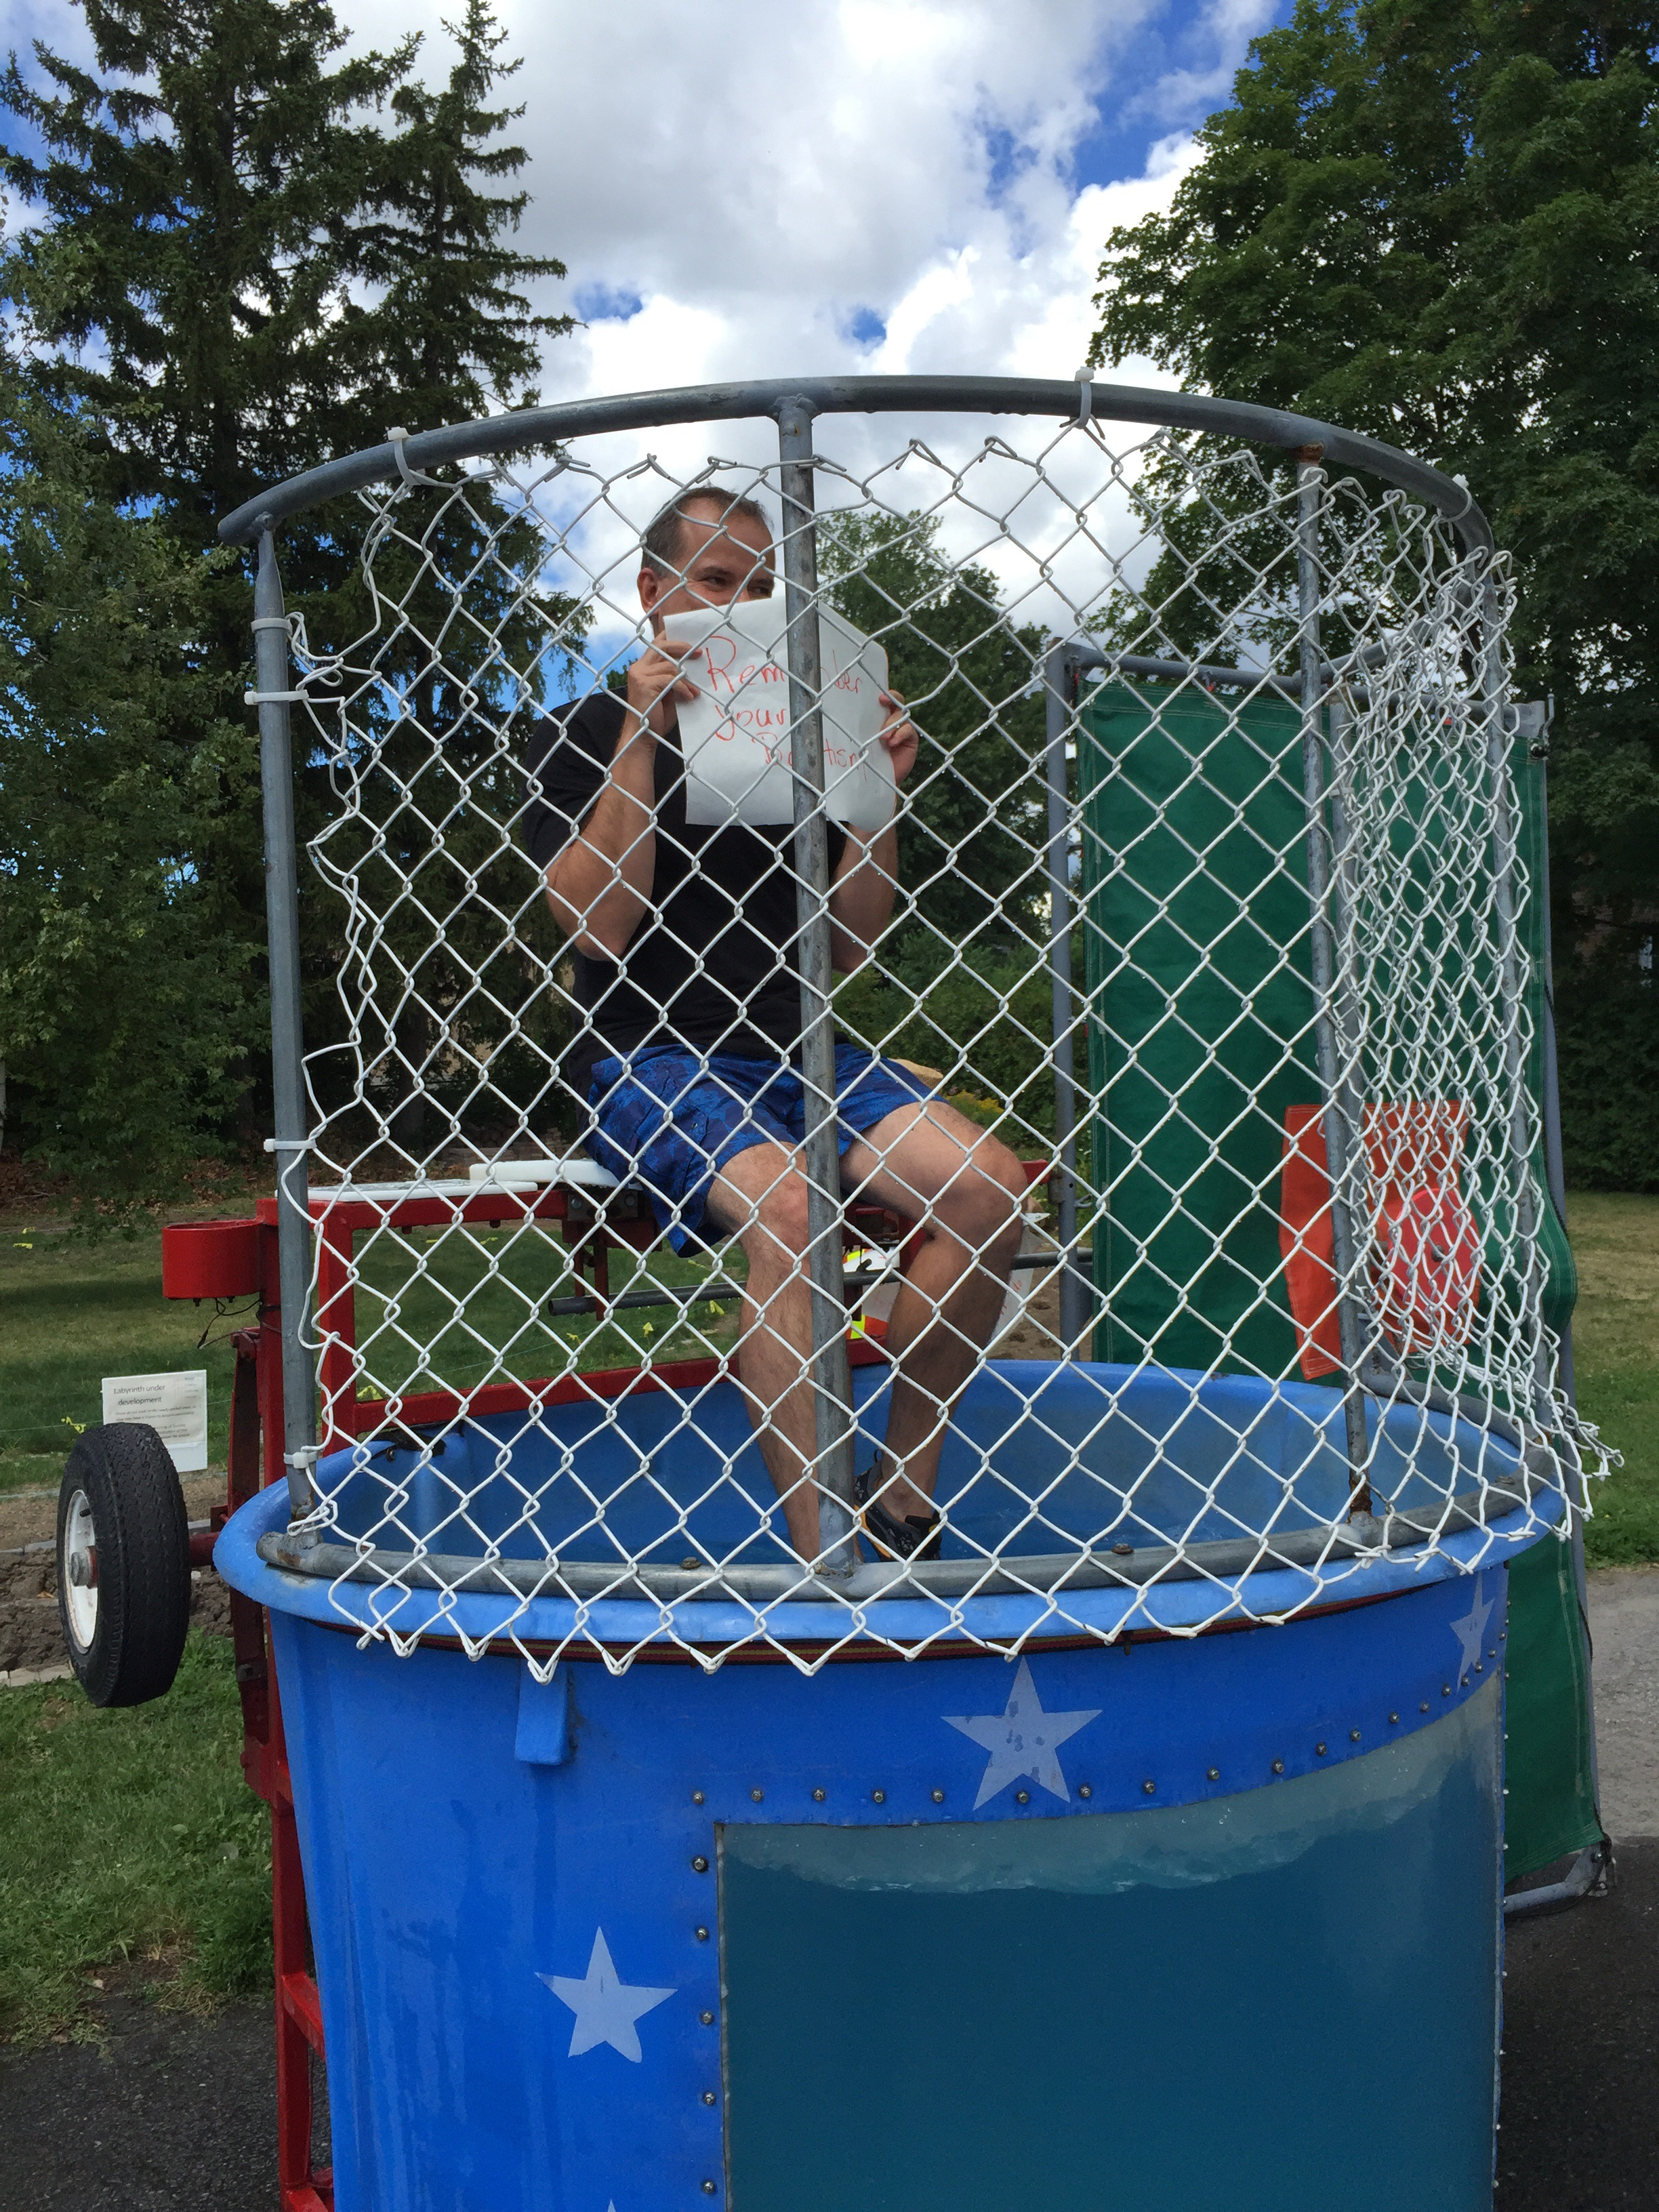 Dunking booth baptisms - Like My Experience In The Dunk Tank Last Week It S Both Thrilling And Scary To Let Go Of Control Not Knowing When The Ball Will Hit The Target And I Go